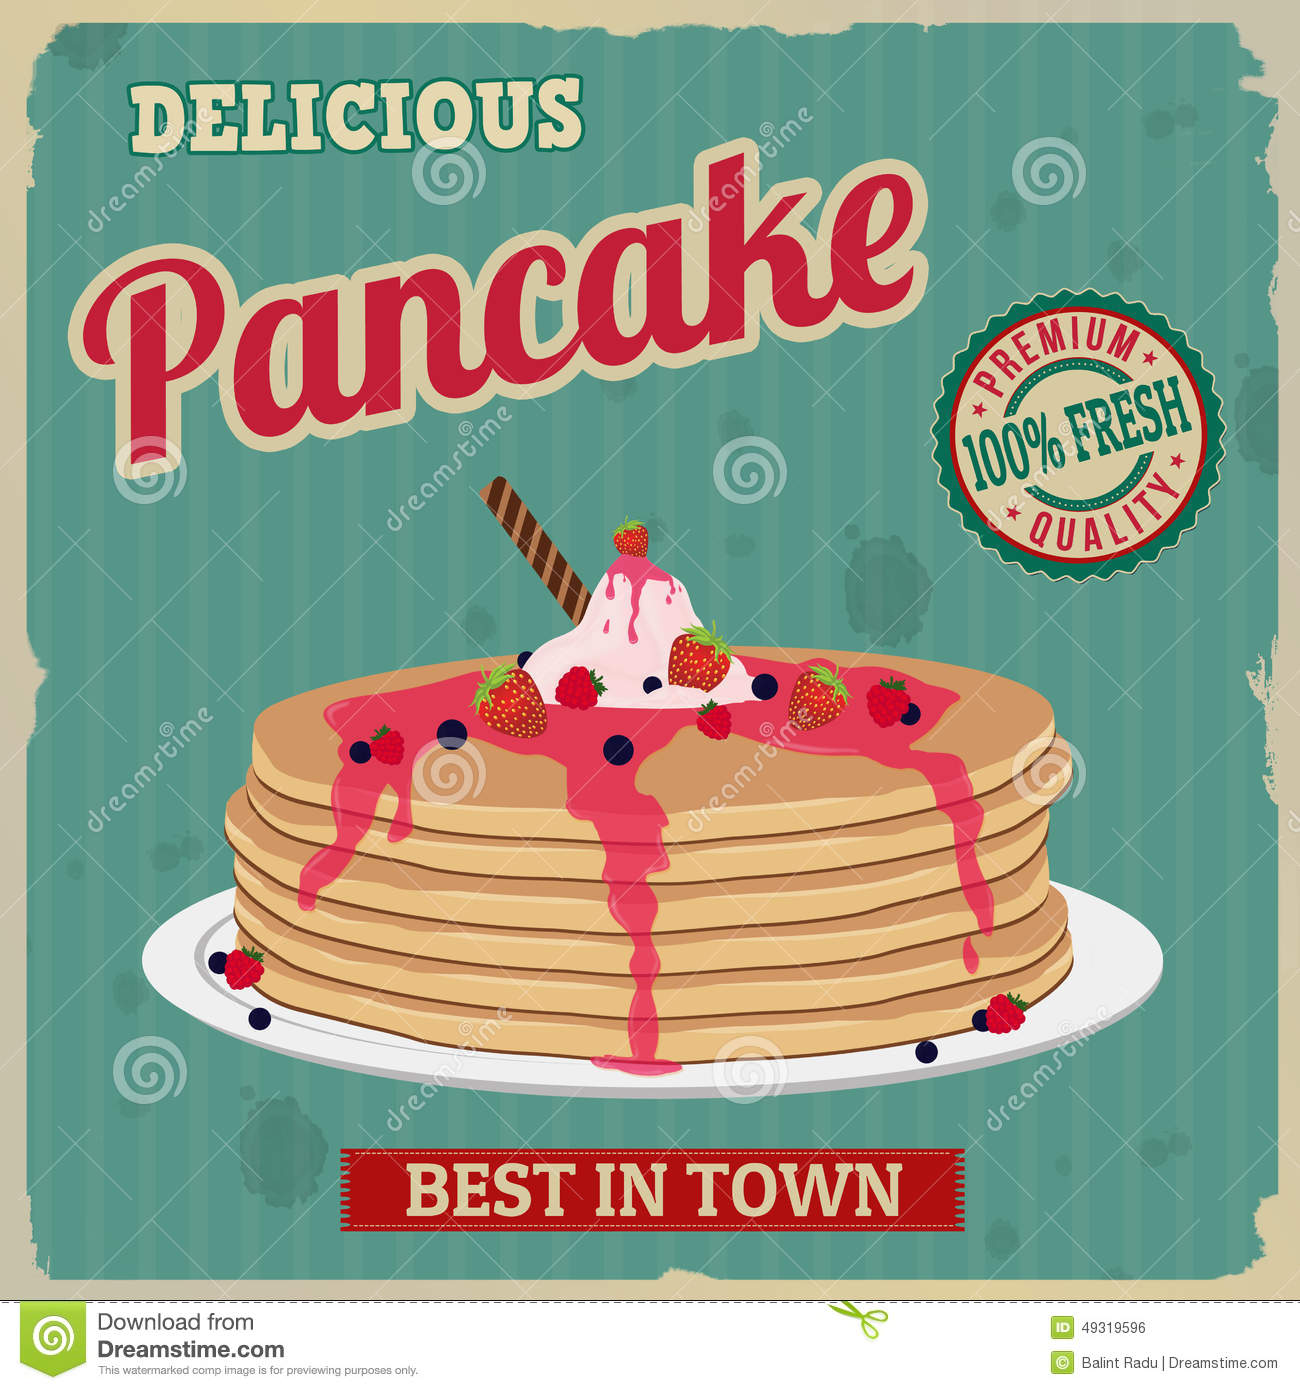 Pancake retro poster in vintage style, vector illustration.